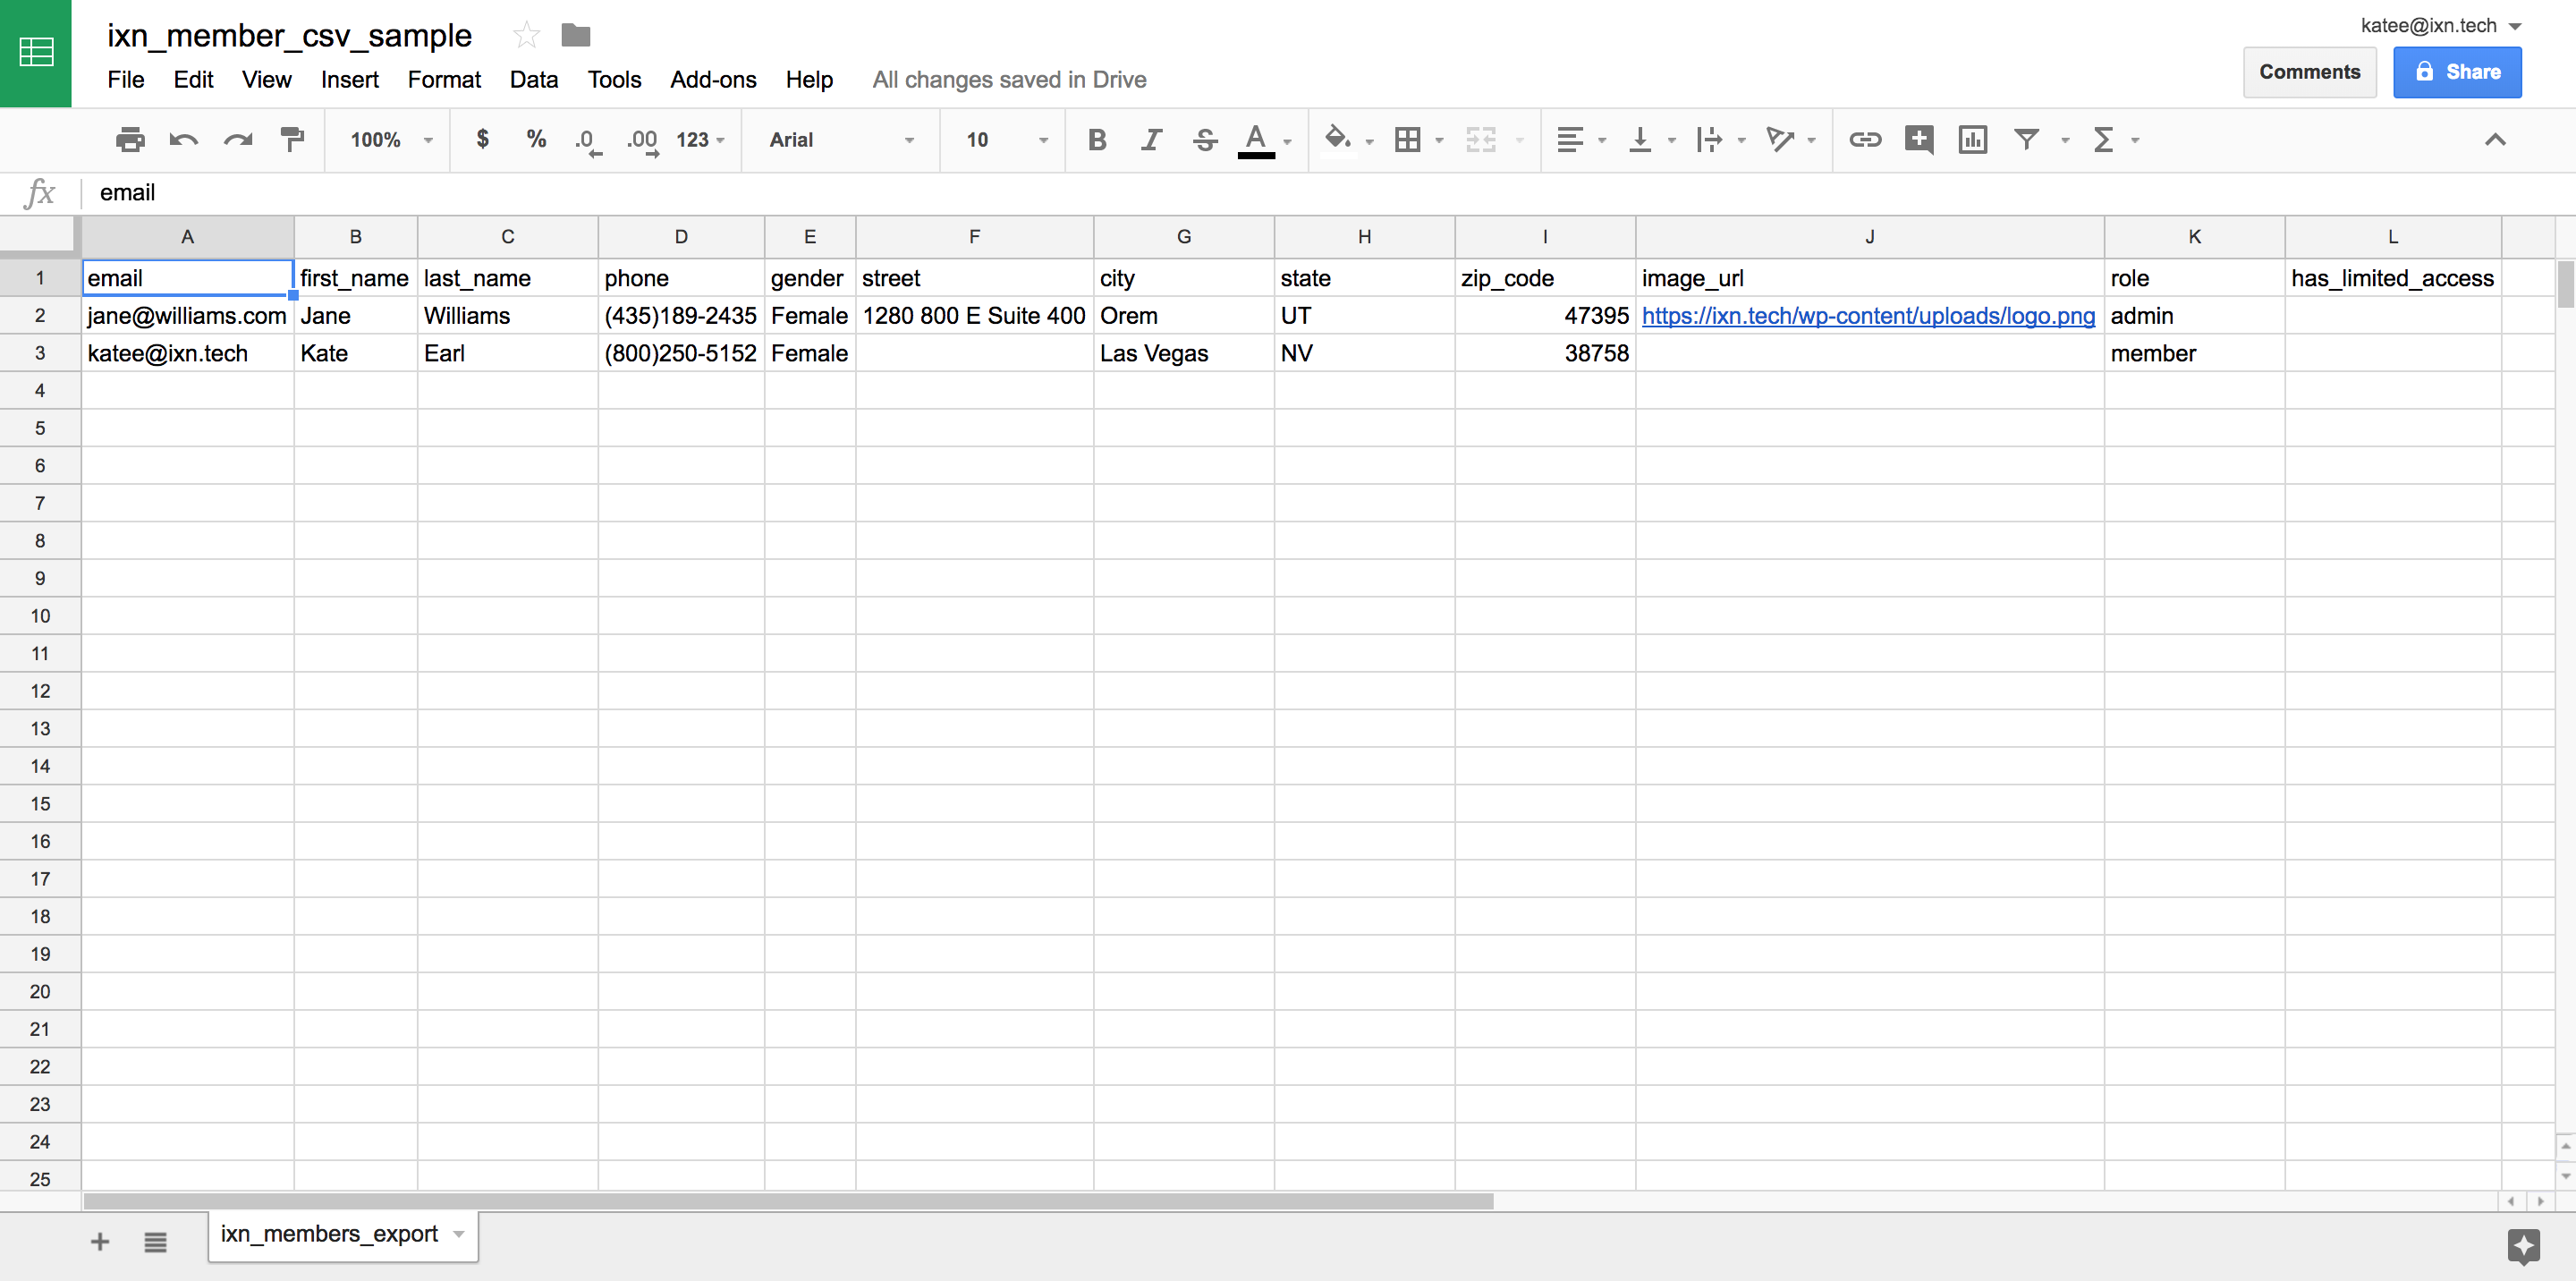 screencapture-docs-google-spreadsheets-d-10m5CDFx2myqOlcftpPnLKa2E6b1sk-XIk0UN6beFjY8-edit-1510948058200